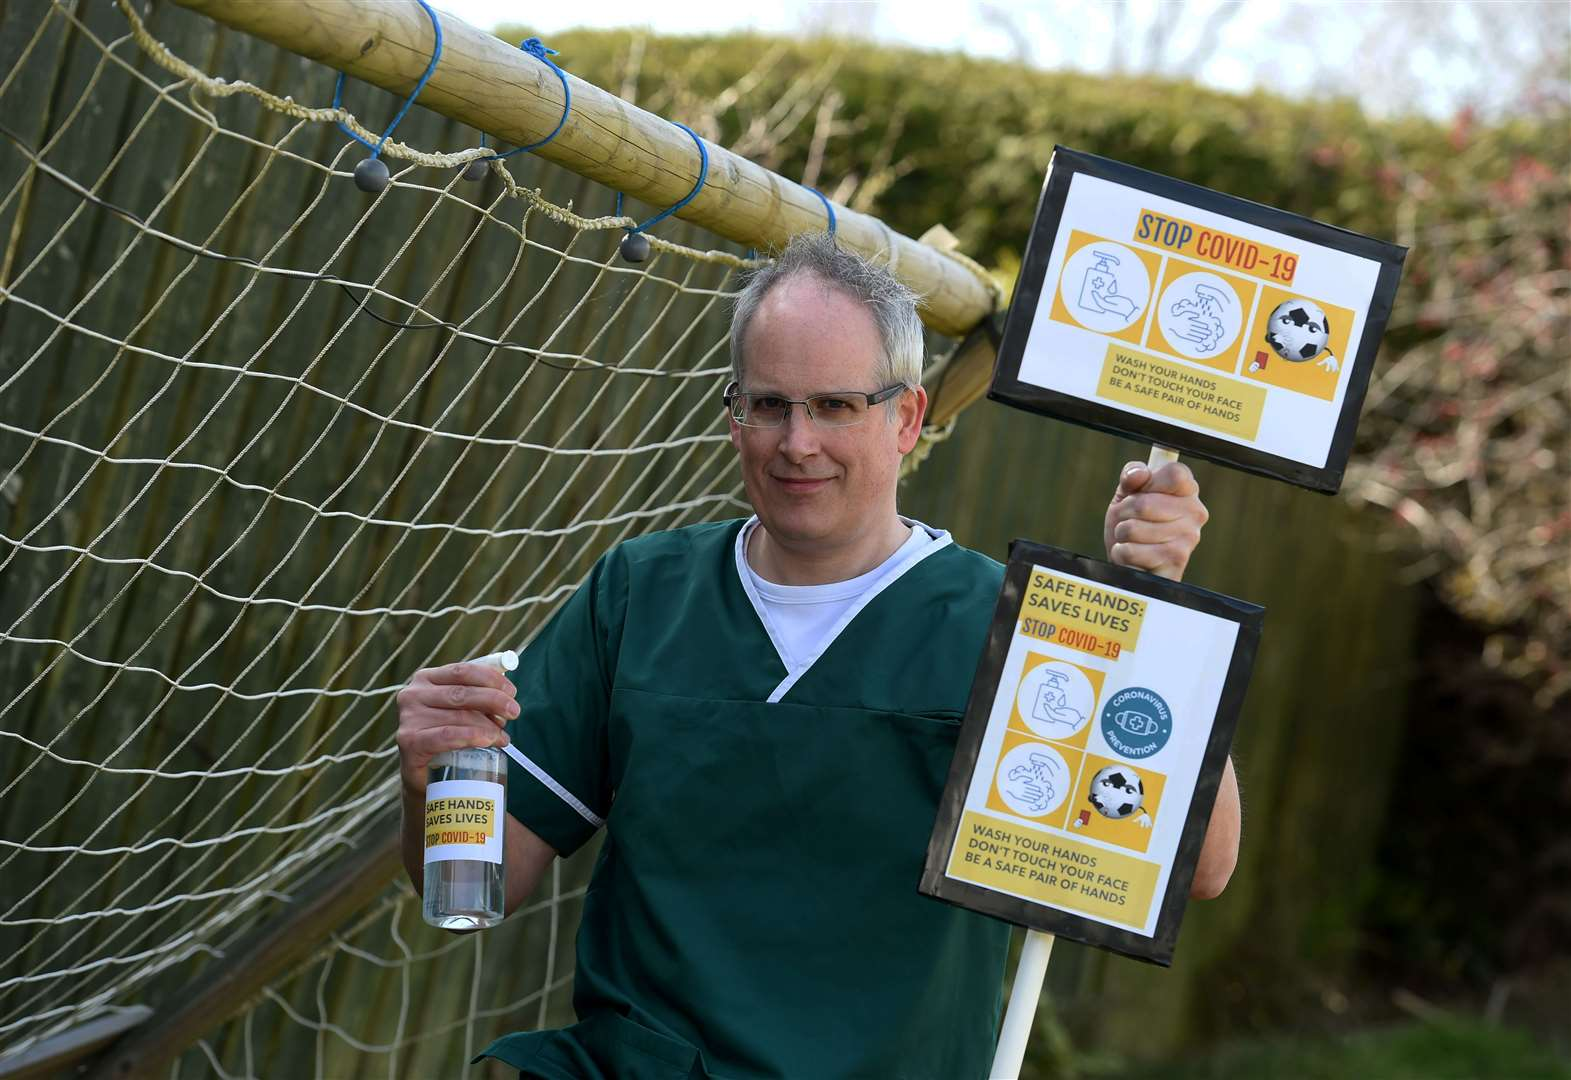 Campaign To Secure Hand Sanitiser And Refill Stations For Rural Communities Gathers Pace photo